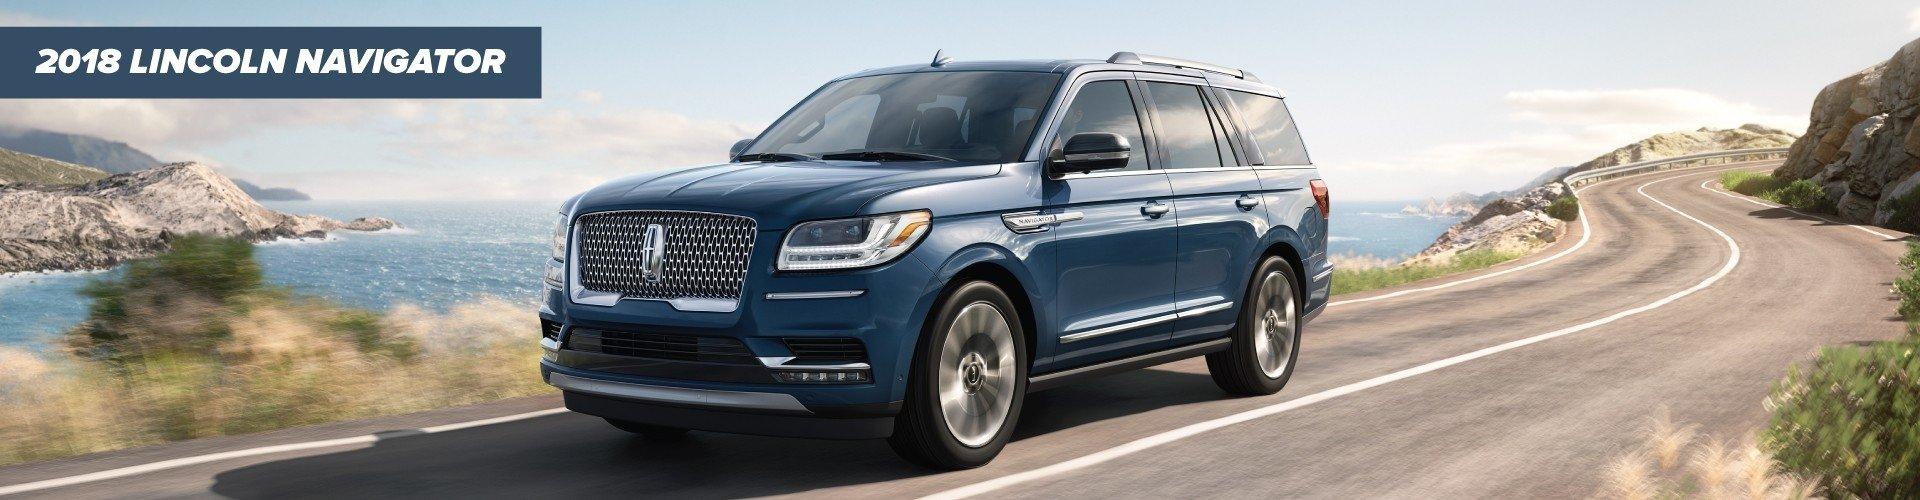 2018 Lincoln Navigator for sale in St Augustine, Florida